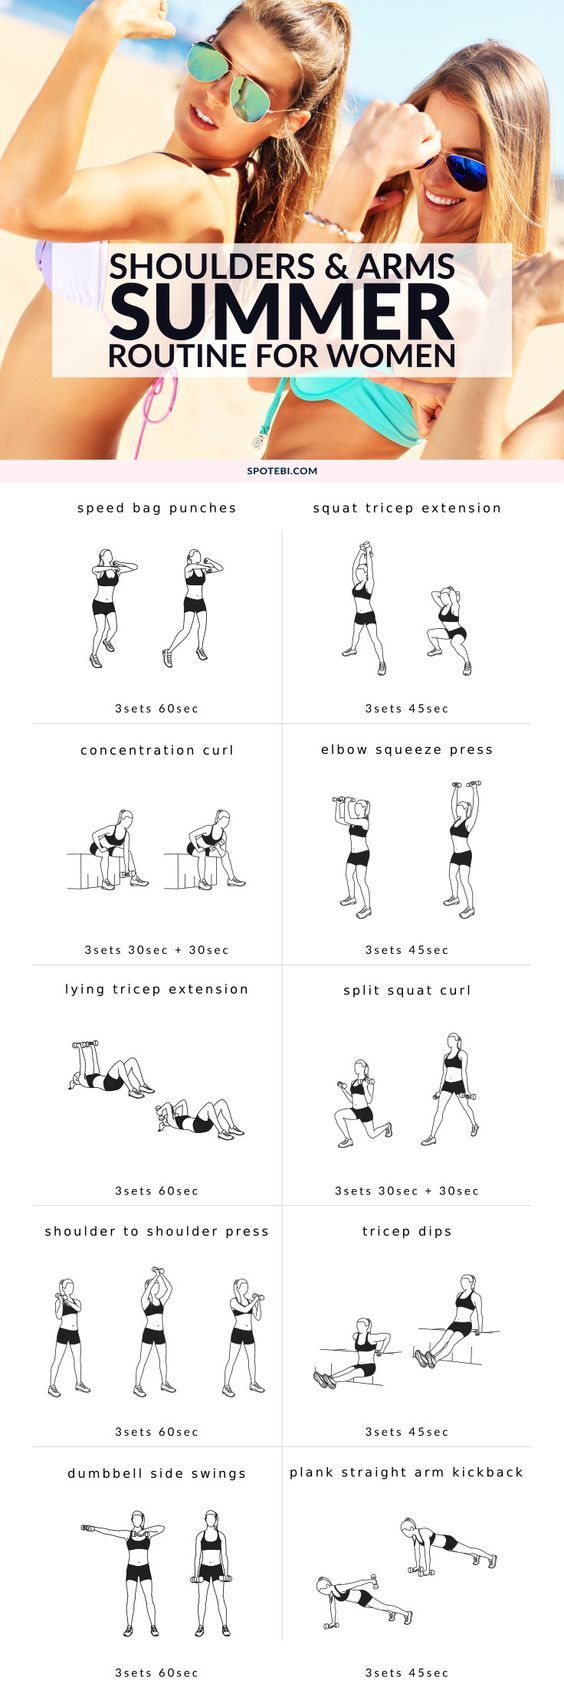 SHOULDERS AND ARMS WORKOUT FOR WOMEN